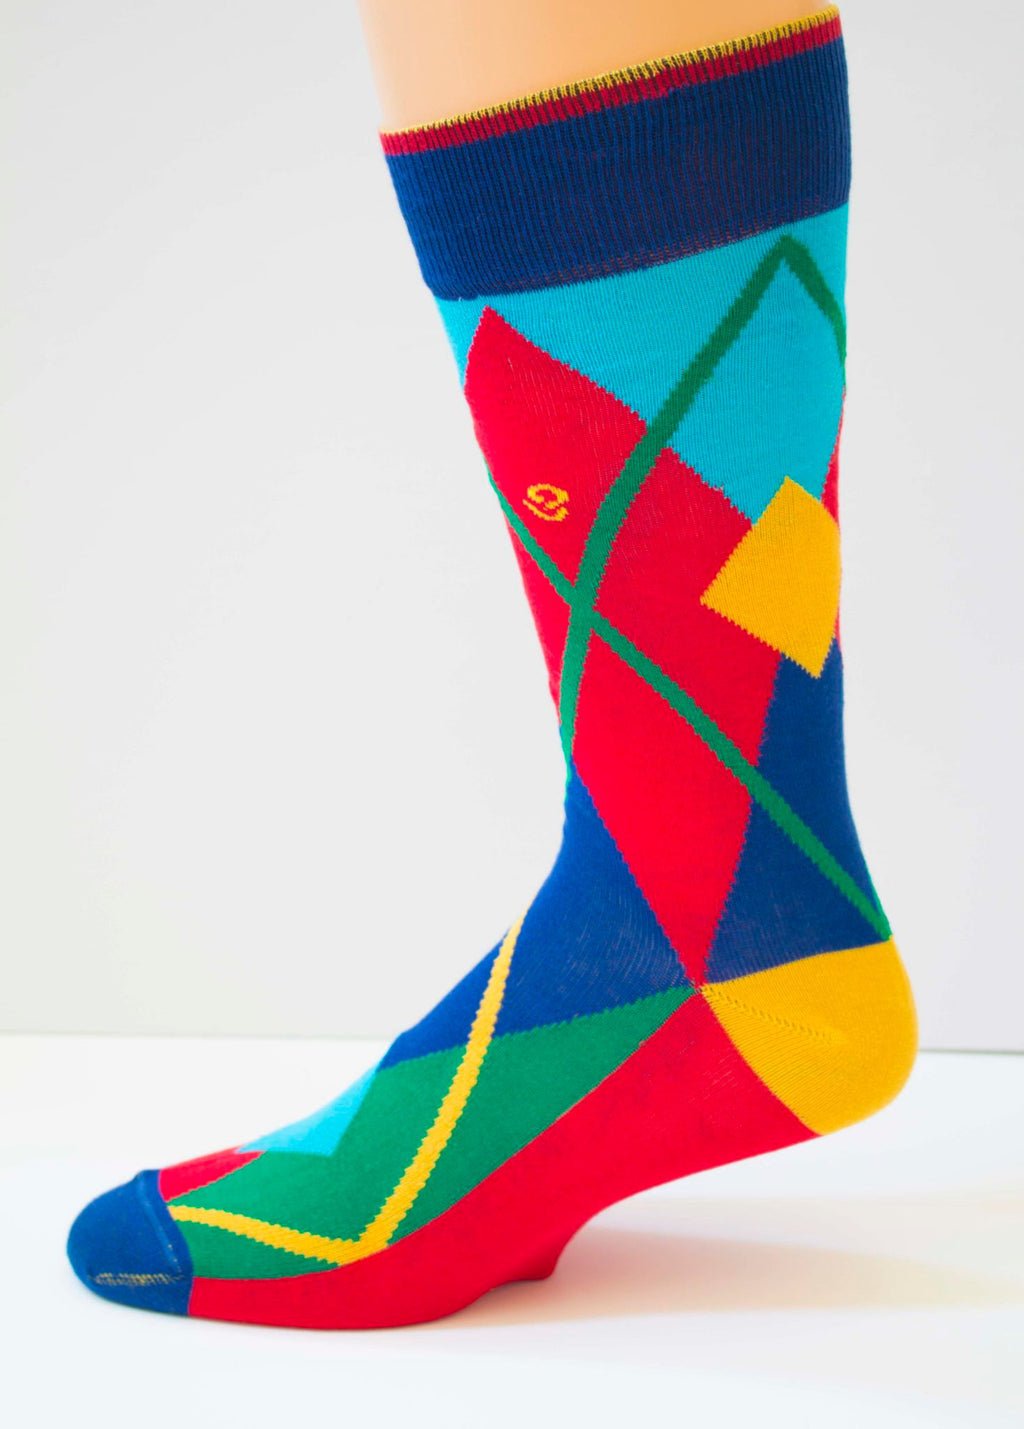 Comfort Zone Women's Socks